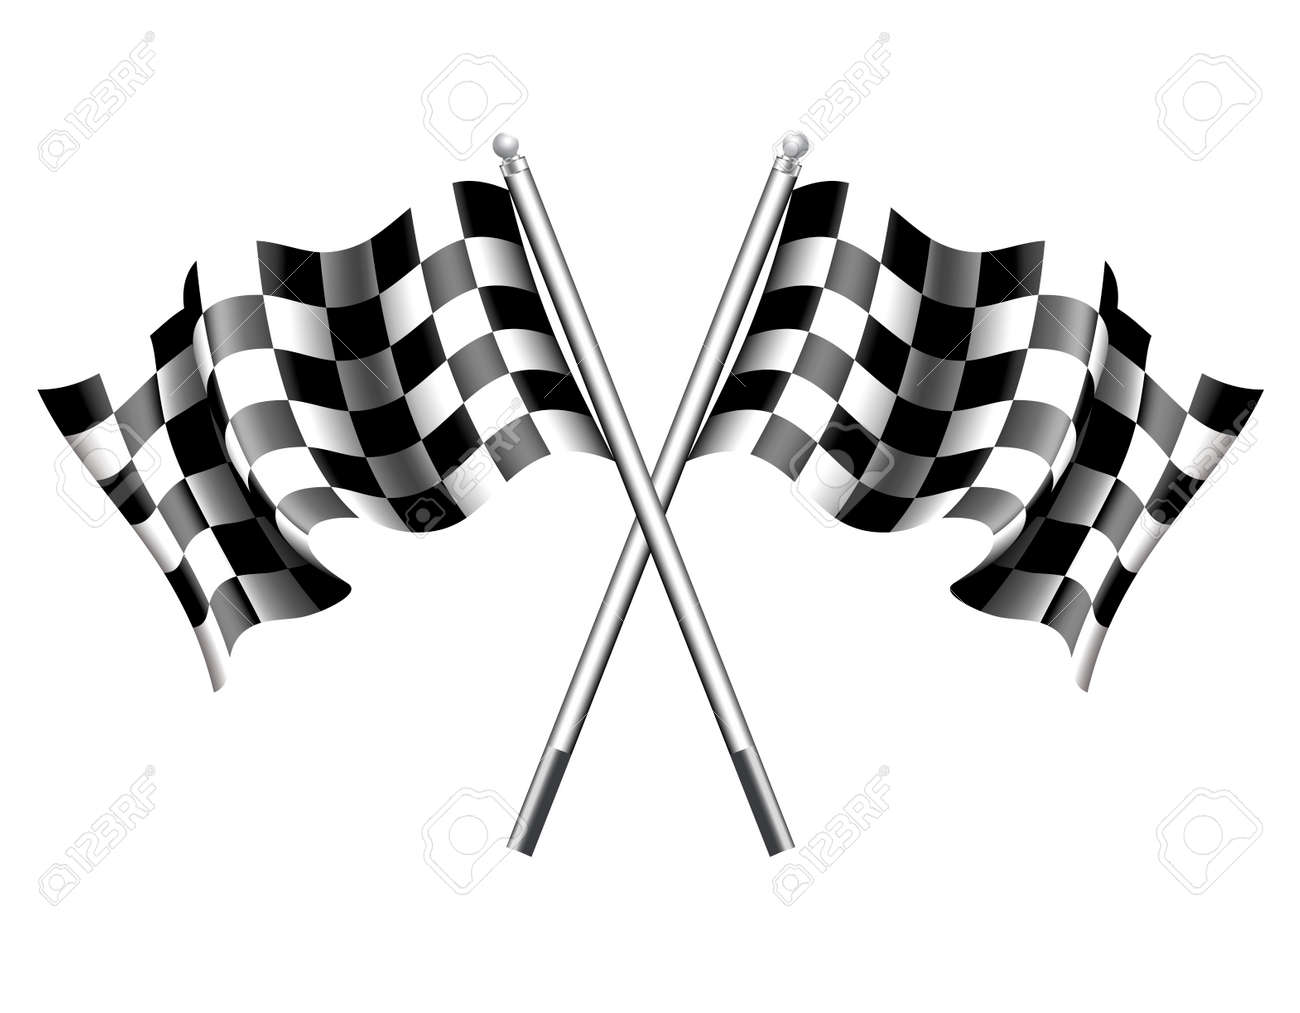 Chequered Race Flag - 34155286